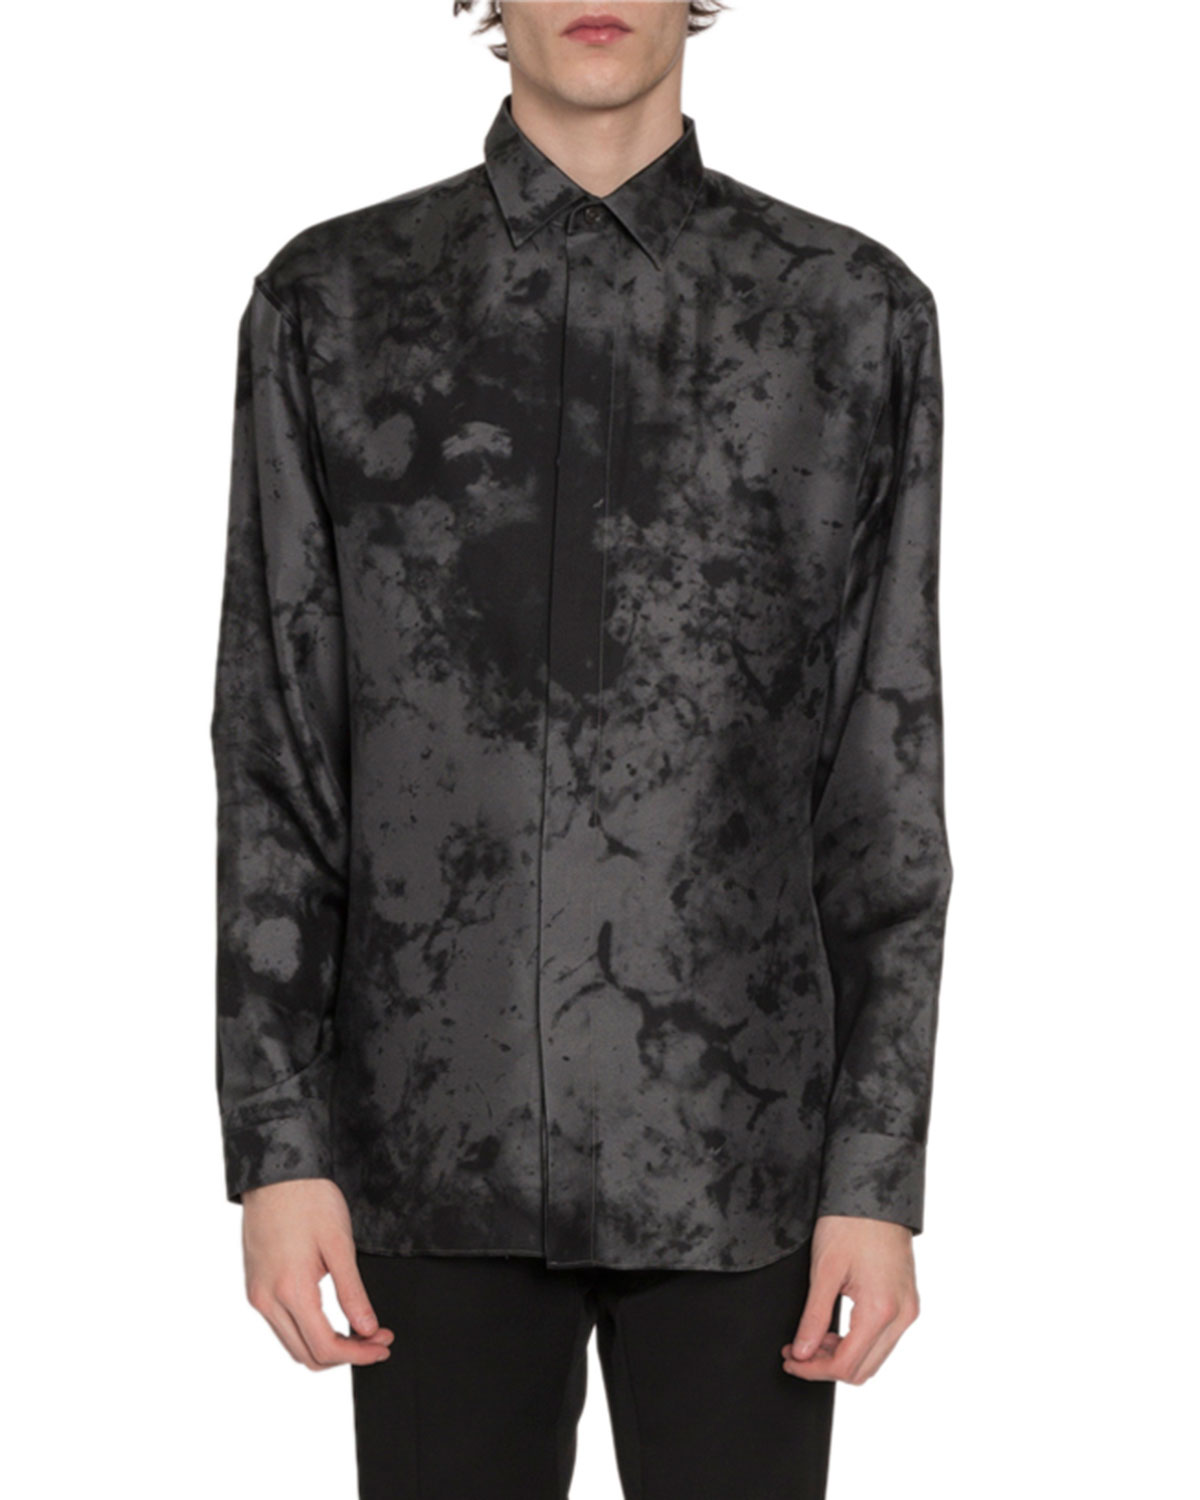 Berluti T-shirts MEN'S MARBLE-PRINT SILK SPORT SHIRT, GRAY